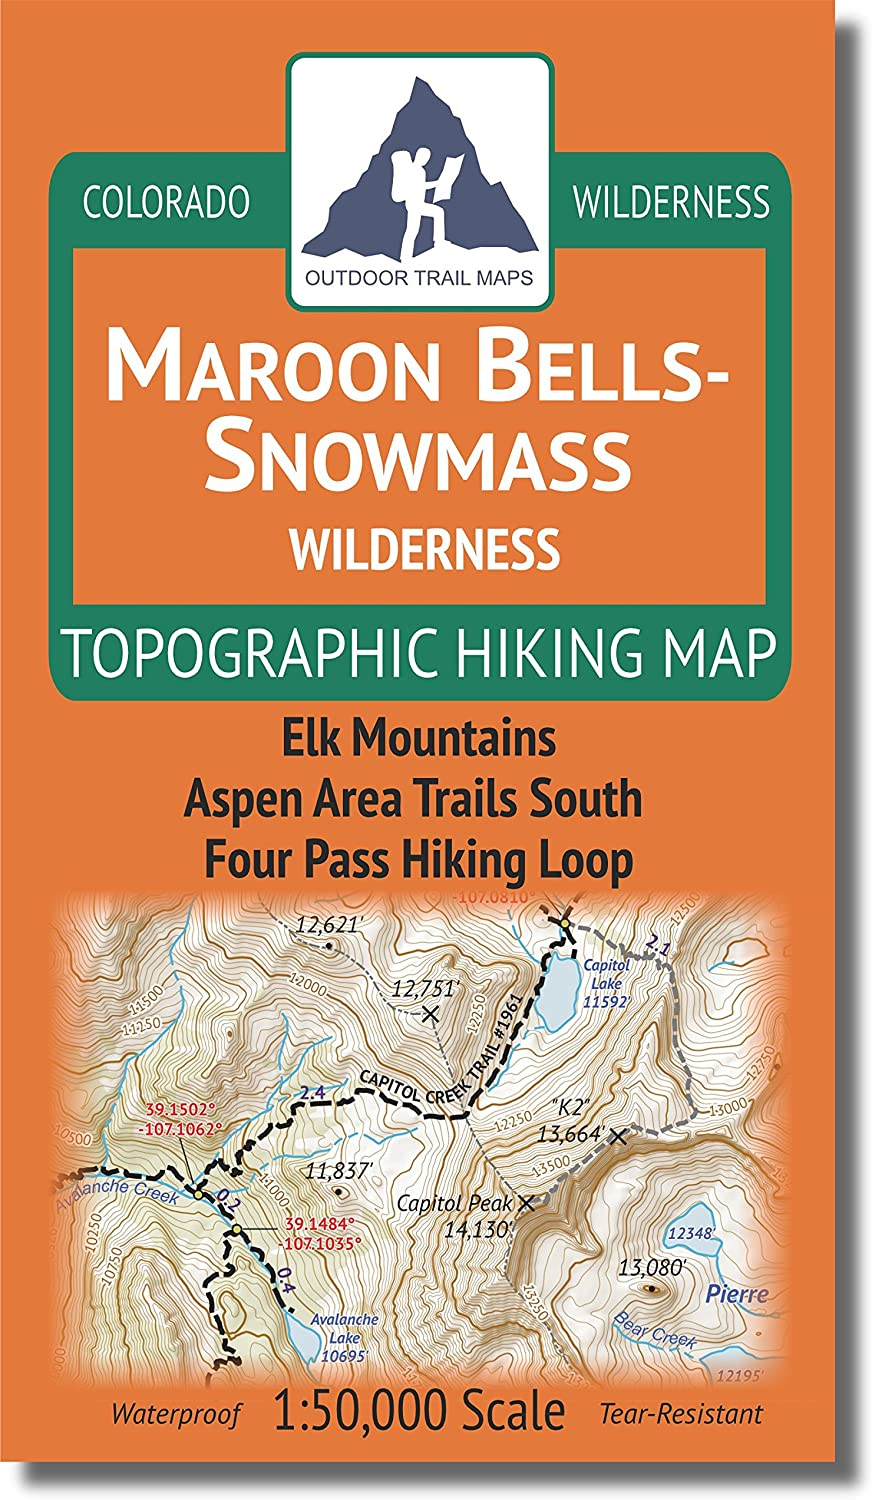 Maroon Bells Snowmass Wilderness Colorado Topographic Hiking Map 2018